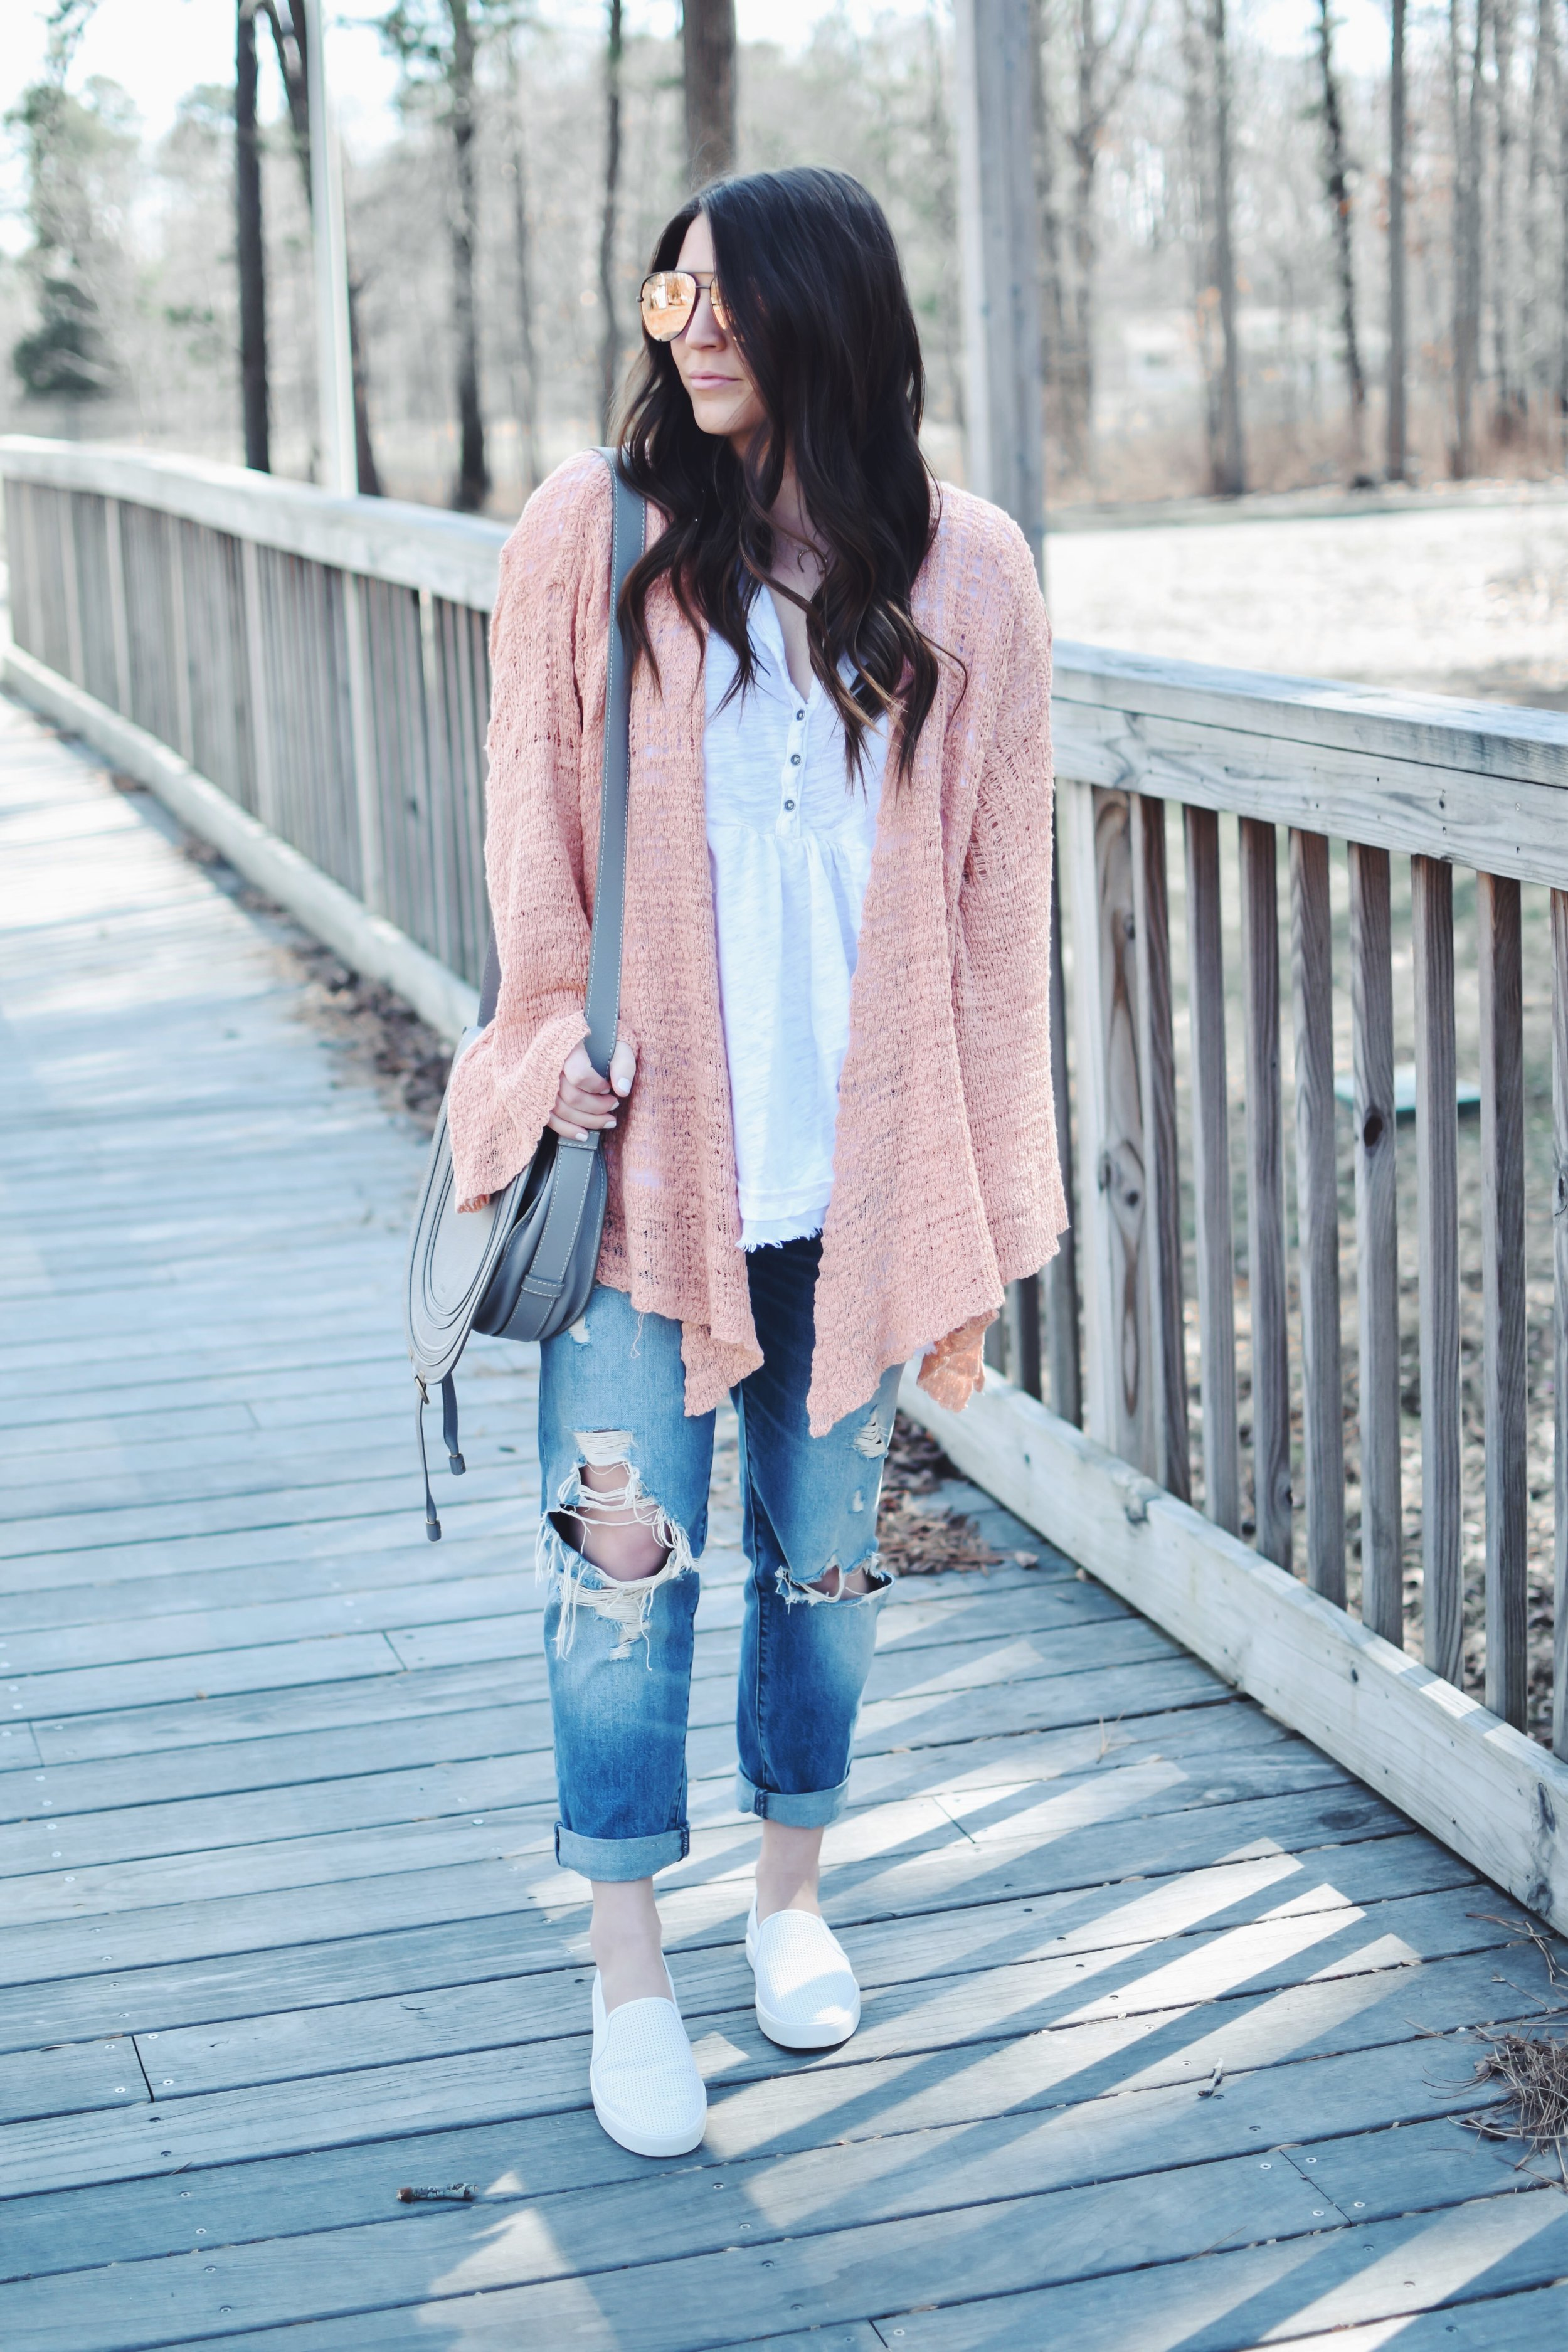 Easy Spring Outfit | Pine Barren Beauty | spring outfit idea, spring outfit inspiration, free people cardigan, Abercrombie distressed boyfriend jeans, Vince slip ons, Chloe bag